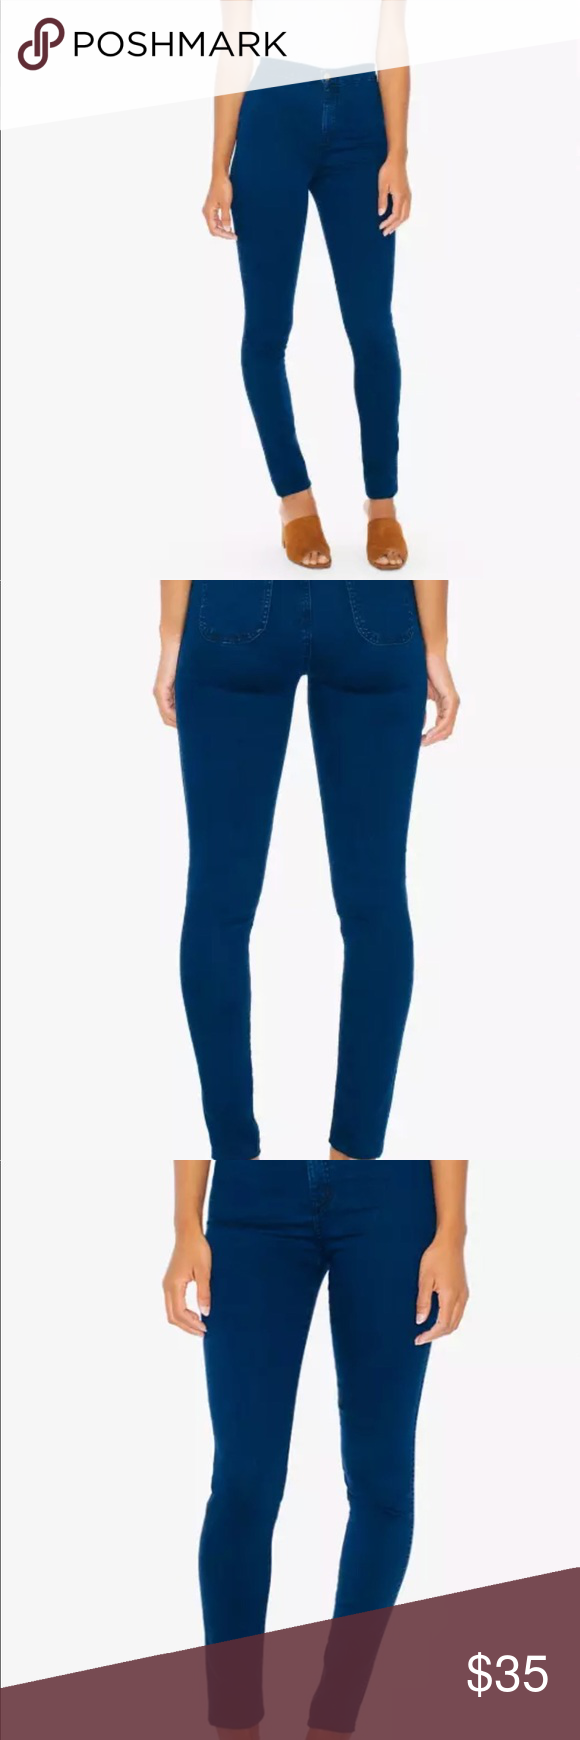 American Arel Dark Wash Indigo Jeans Size S Available In Only Refer To Sizing Chart Pics Description This Slim High Waist Jean